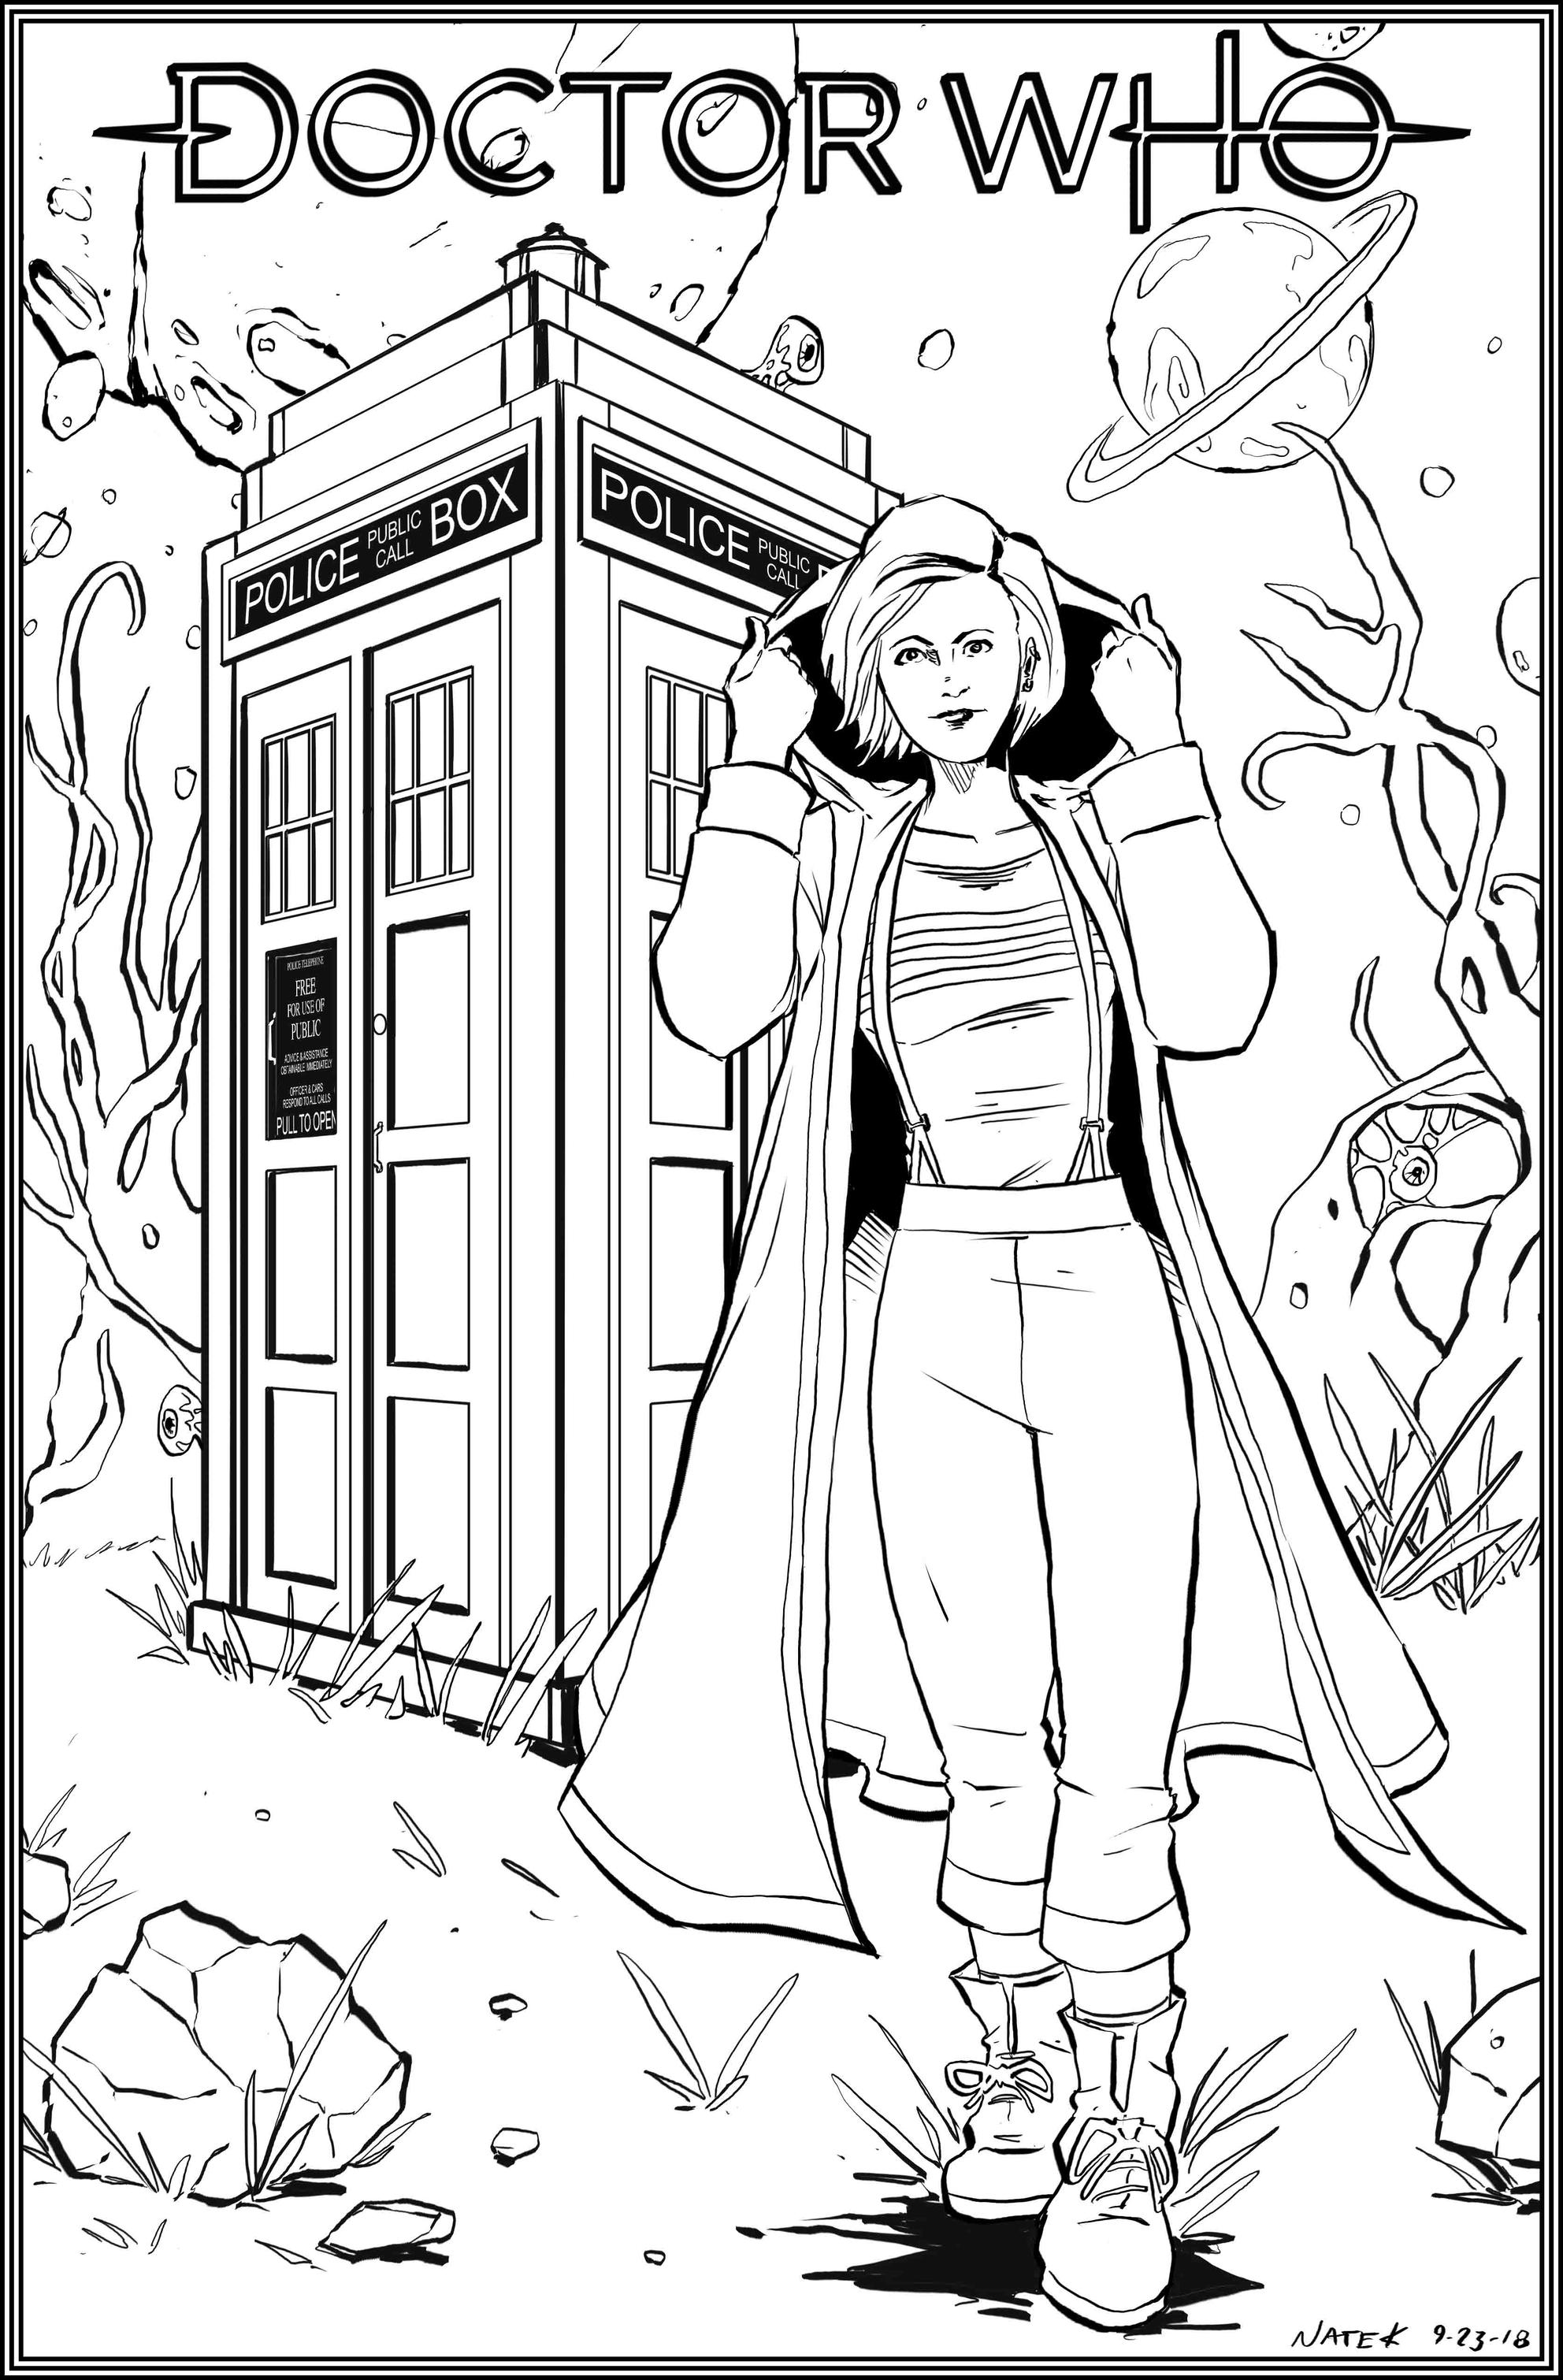 Doctor Who 13th Doctor by NathanKroll